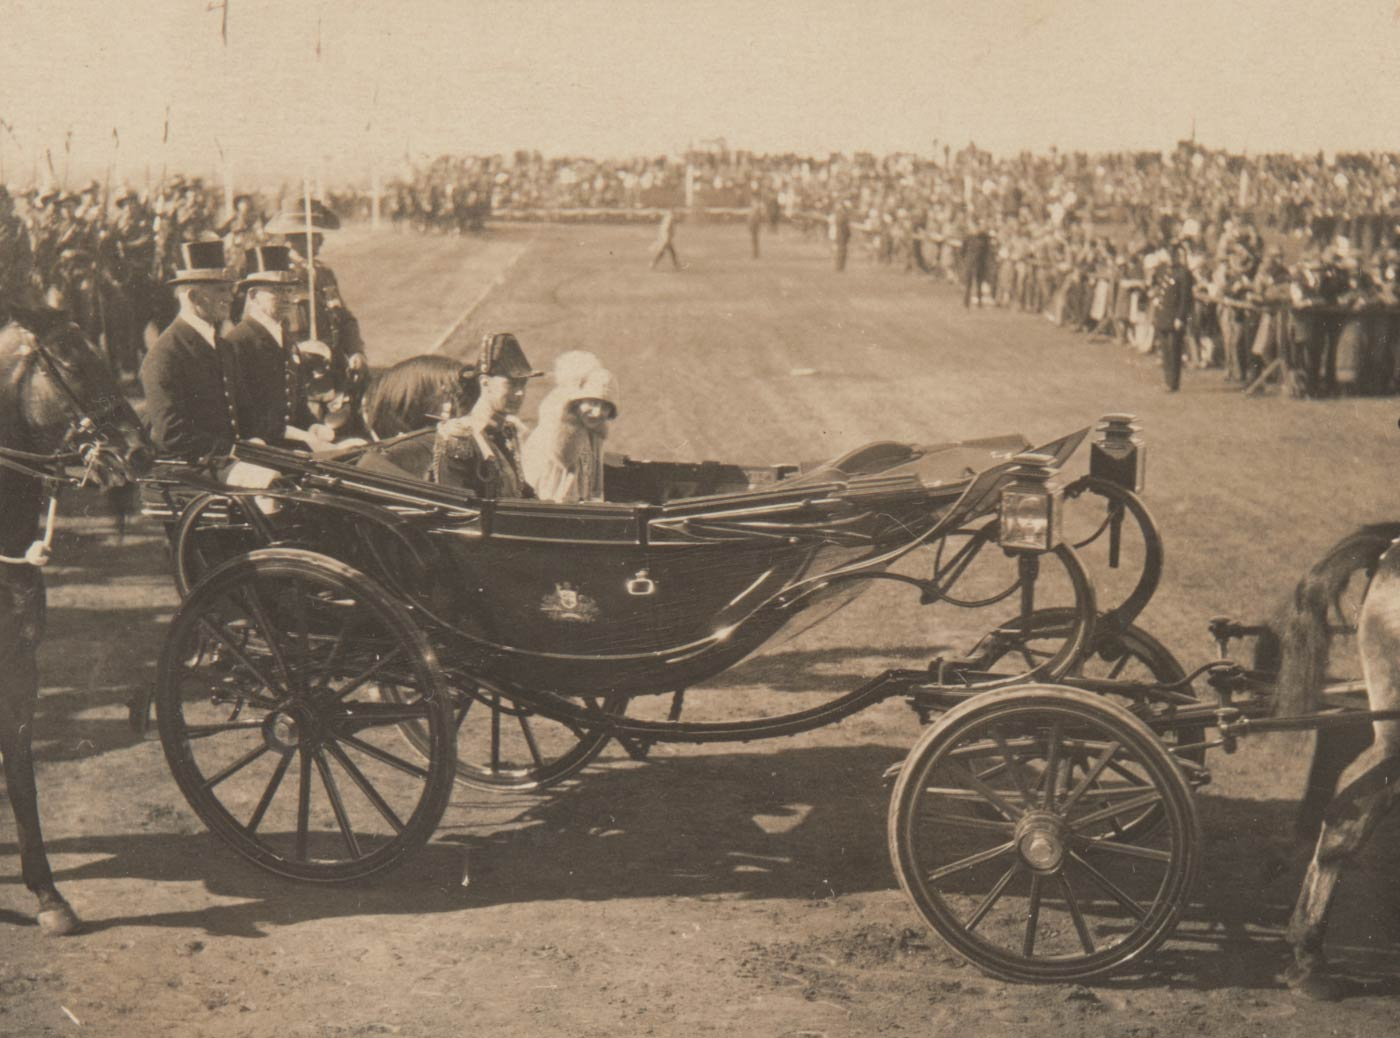 A couple seated in a horse-drawn carriage with crowds in the distance. - click to view larger image